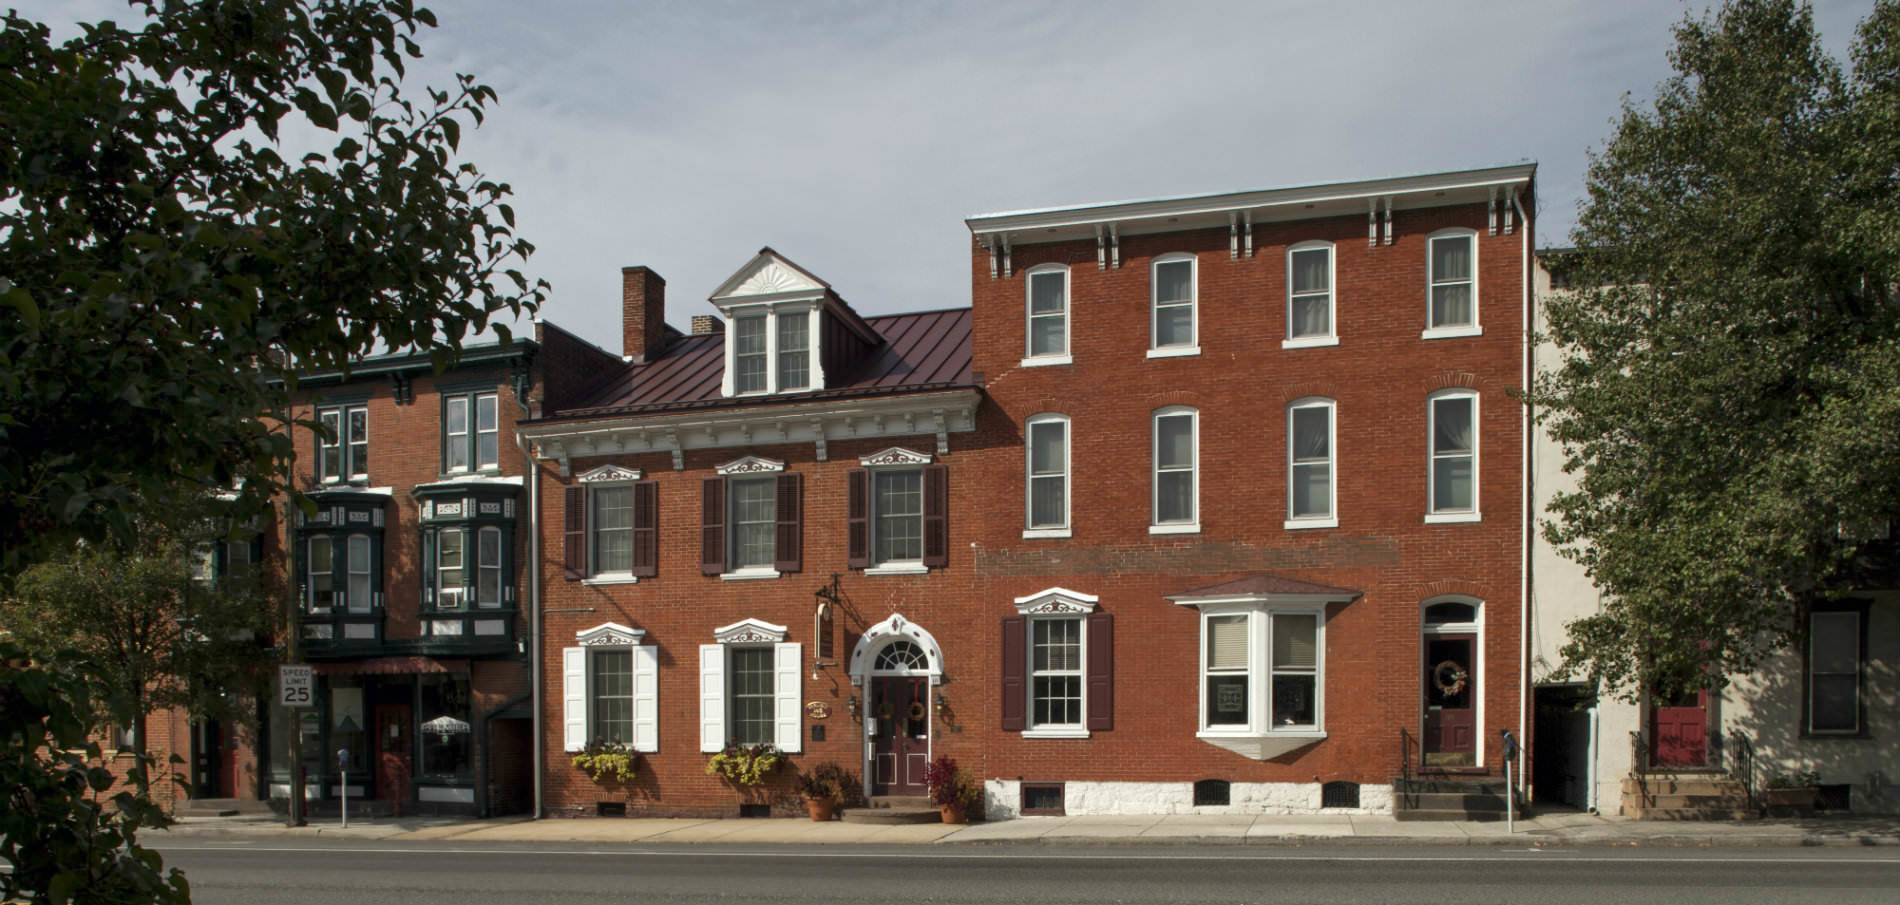 exterior facade of historic brick inn